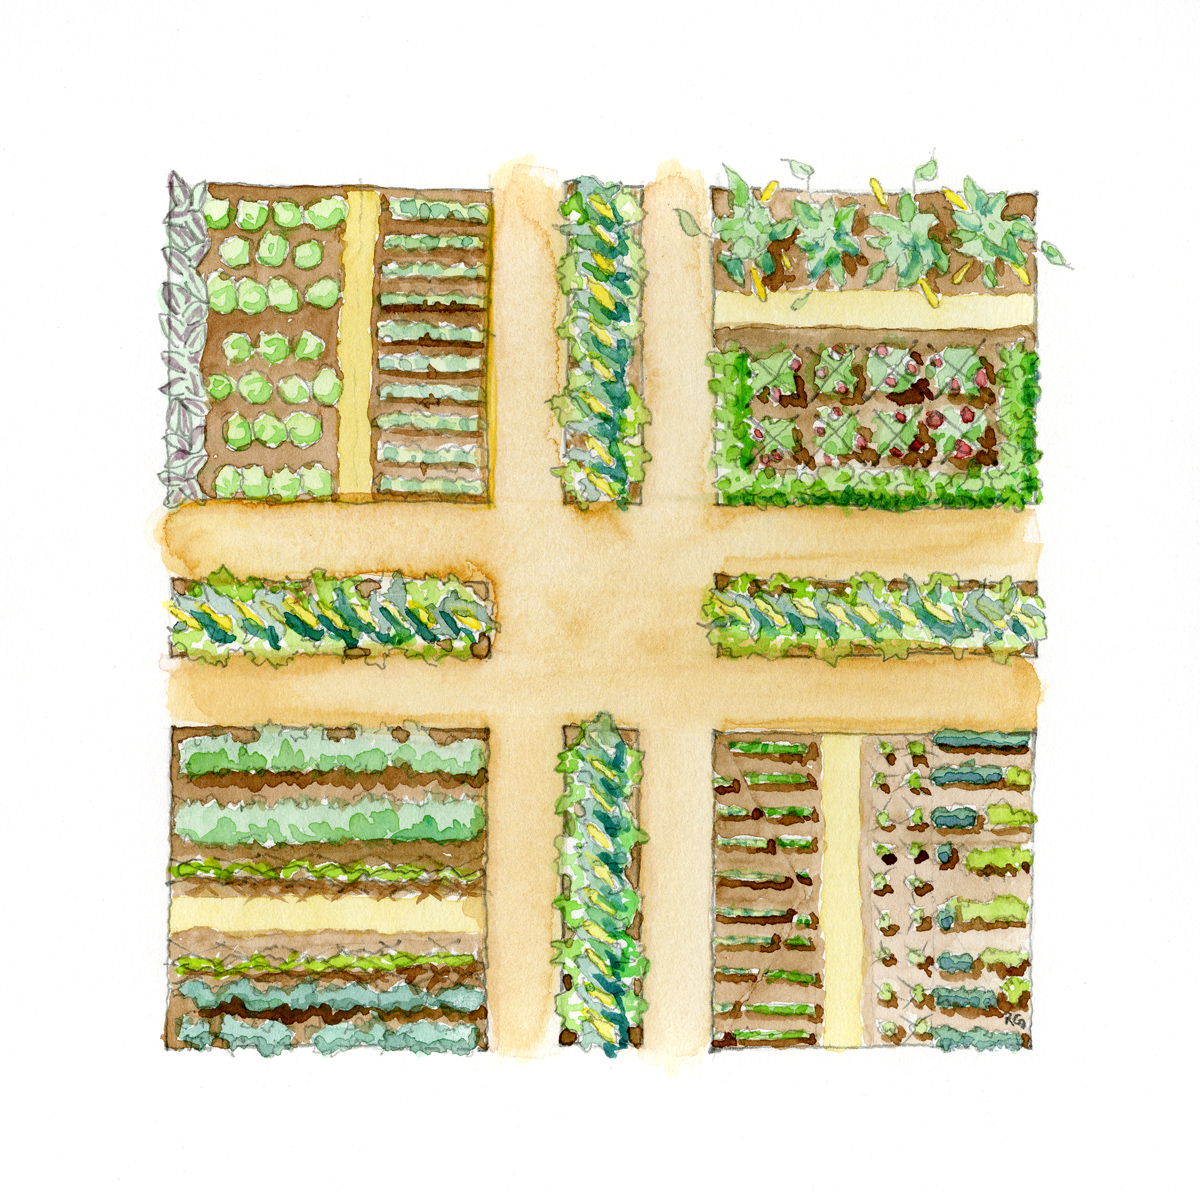 Layout Of Kitchen Garden Soil Before Seeds Ellen Ecker Ogden